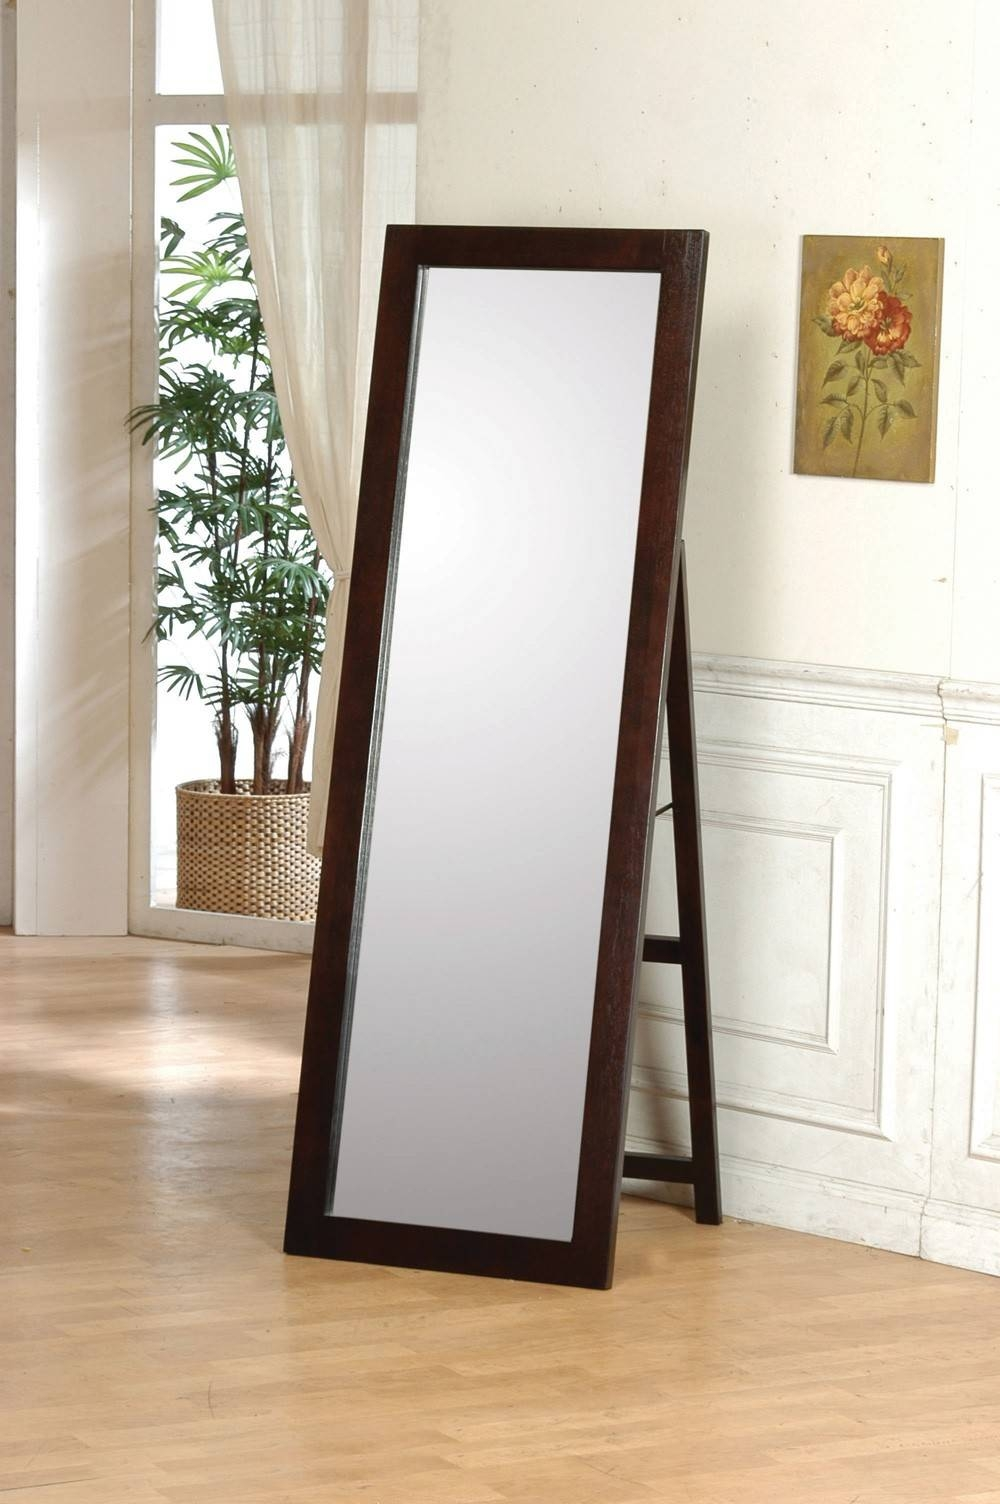 Types And Uses Of Floor Mirrors Within Big Floor Standing Mirrors (View 15 of 15)